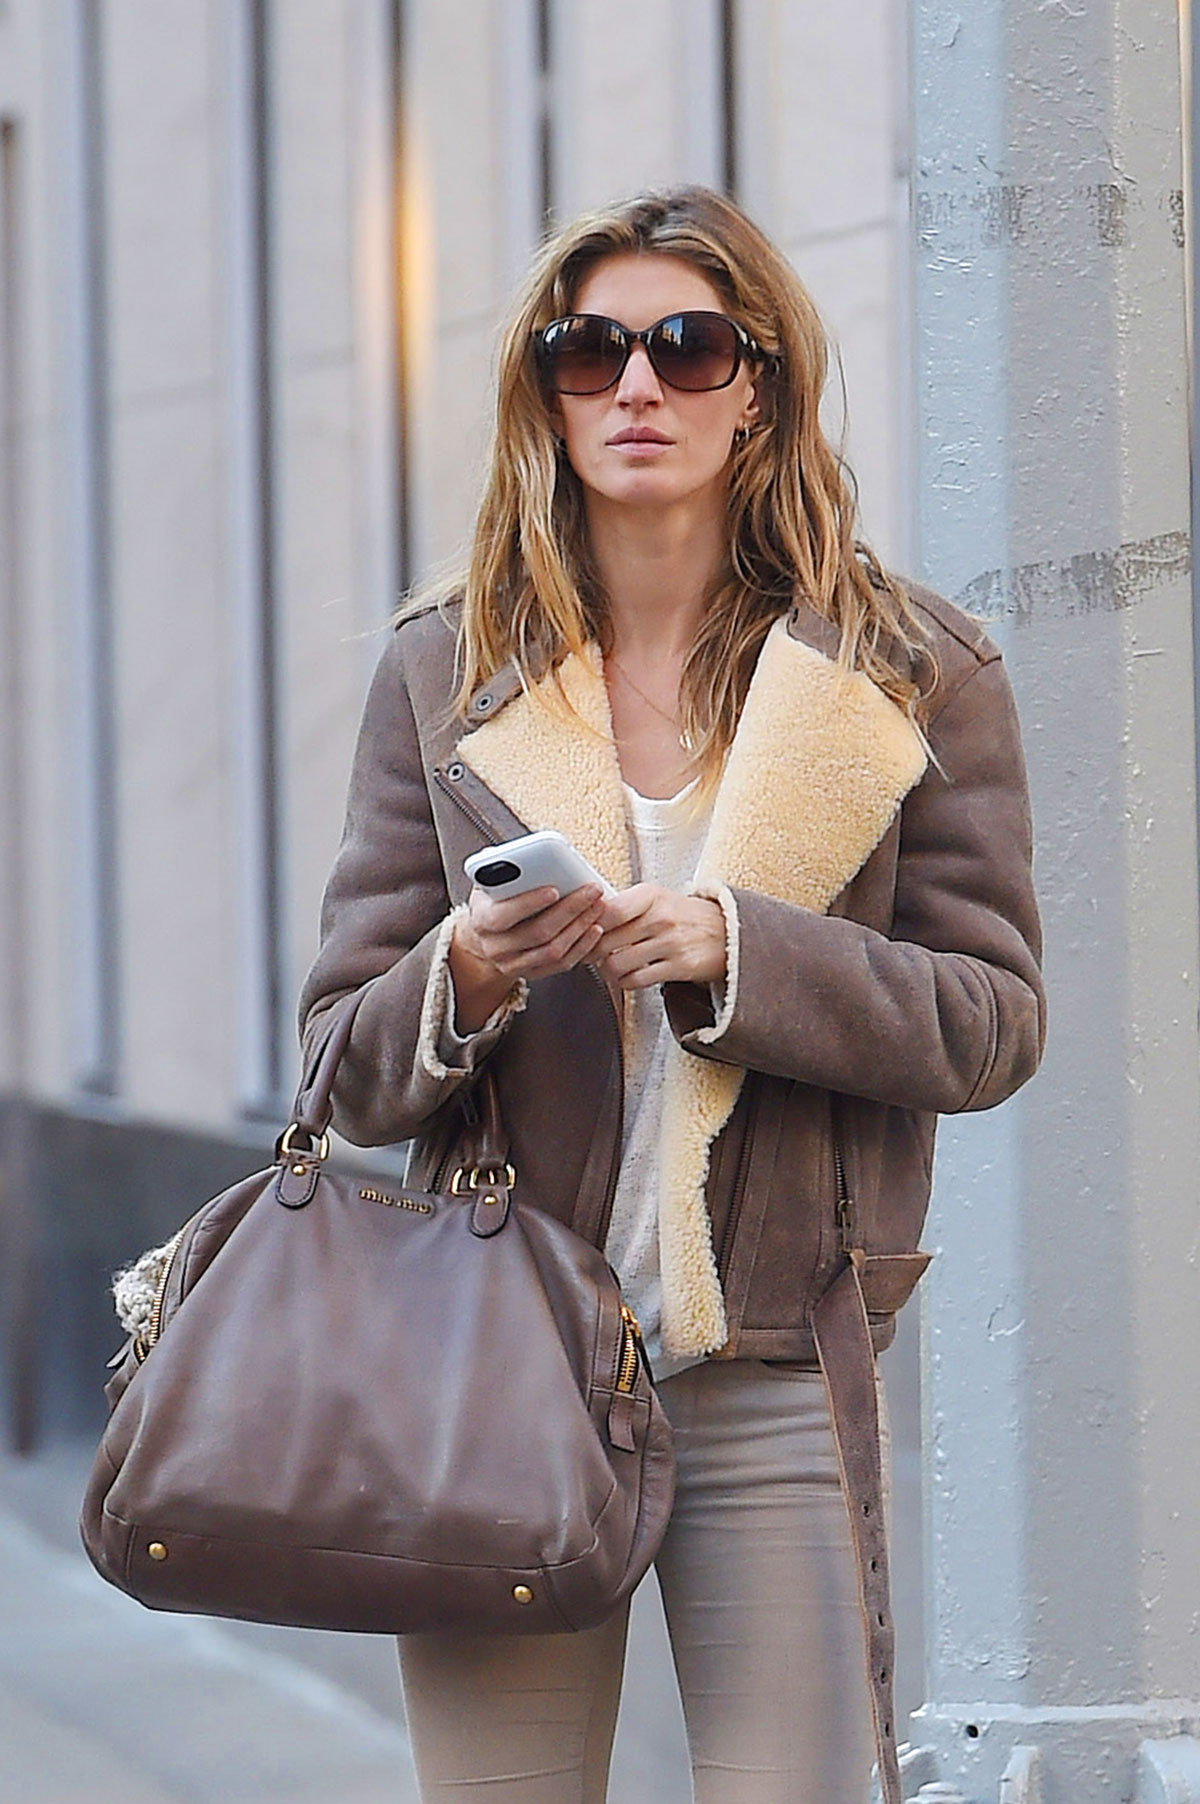 GISELE BUNDCHEN Out and About in New York - HawtCelebs ... Gisele Bundchen